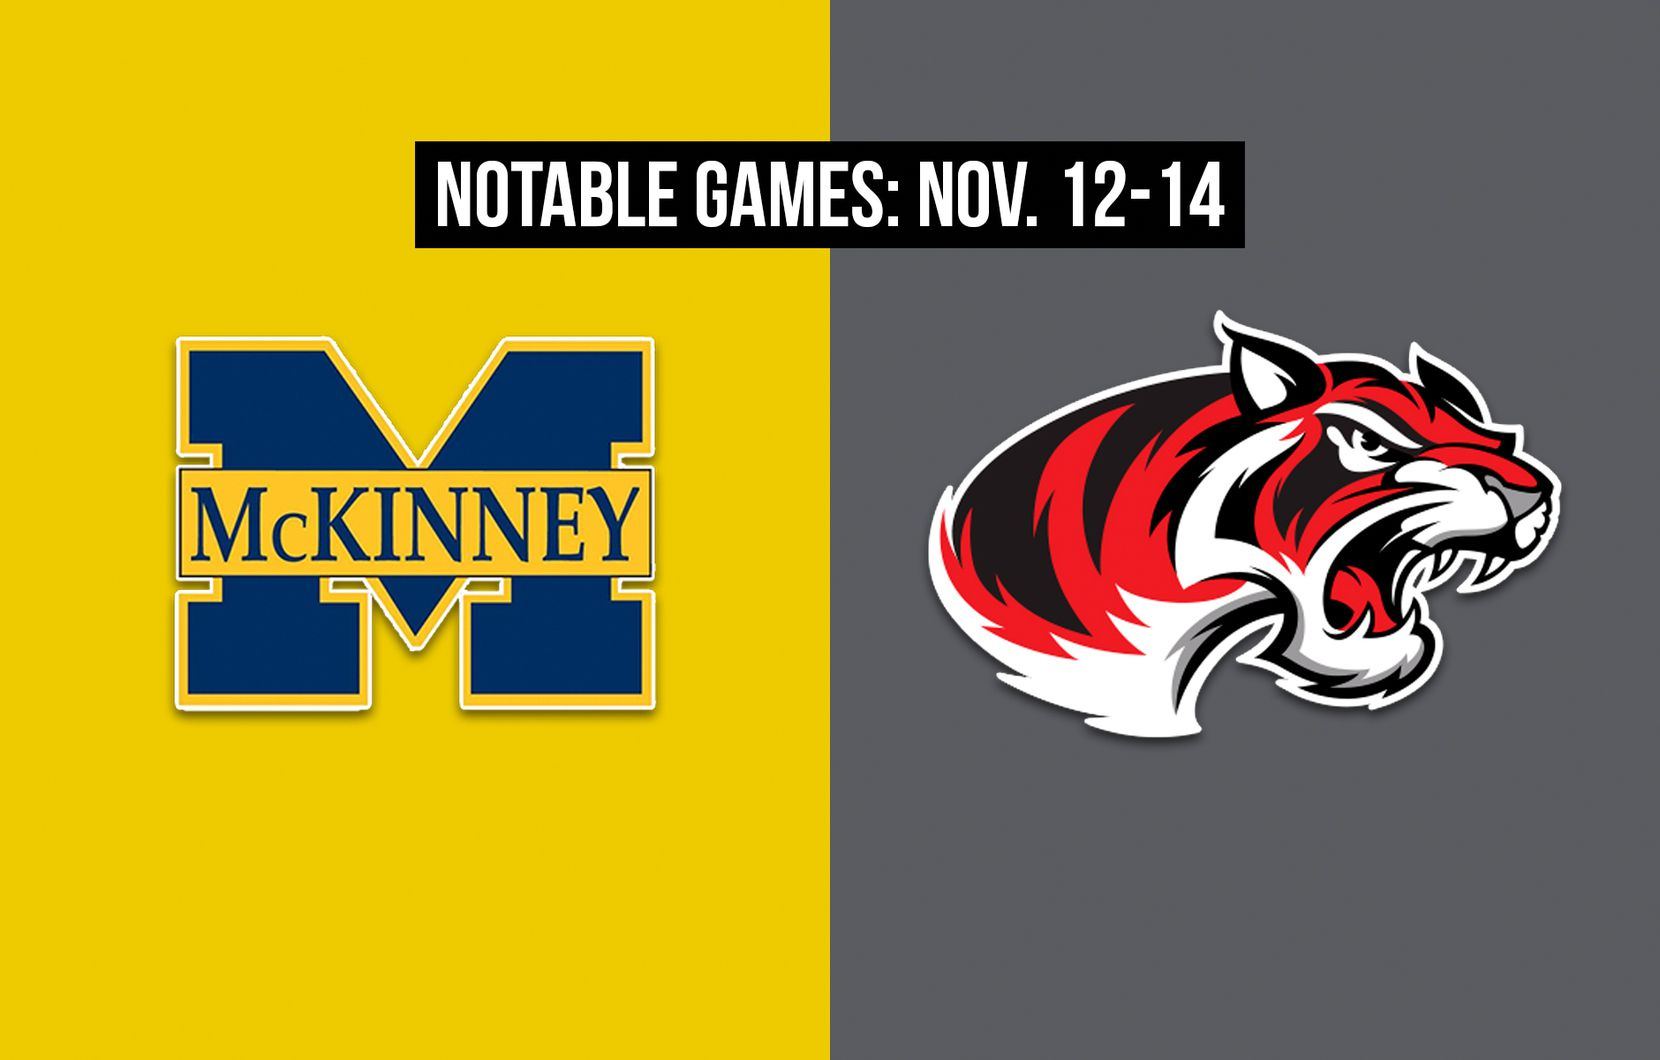 Notable games for the week of Nov. 12-14 of the 2020 season: McKinney vs. Denton Braswell.